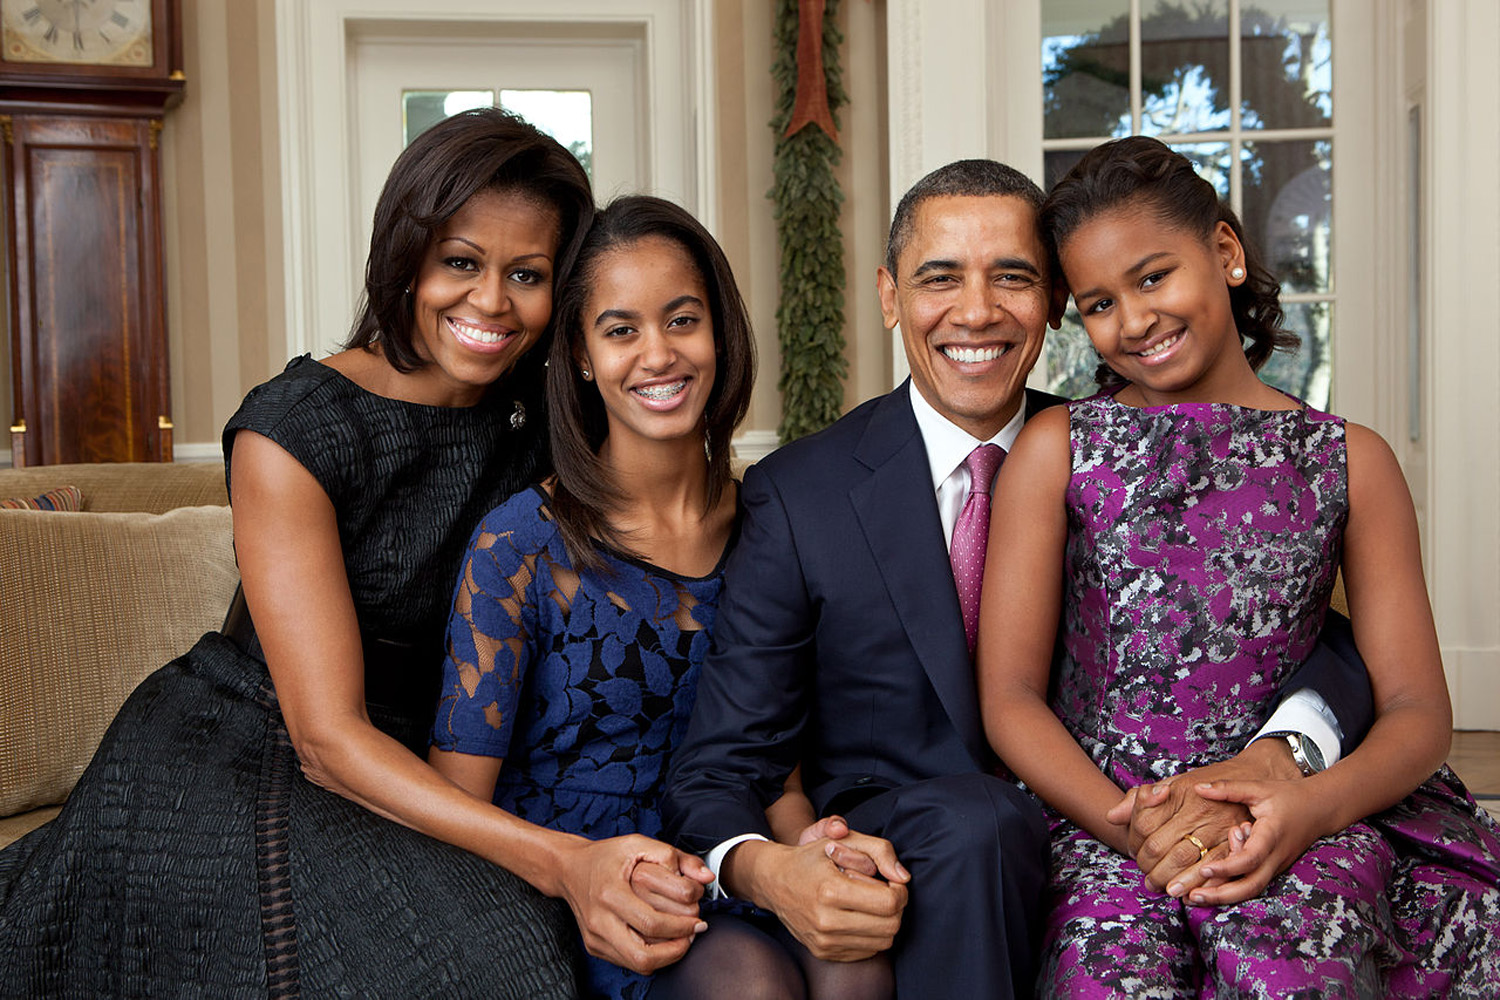 1280px-Barack_Obama_family_portrait_2011